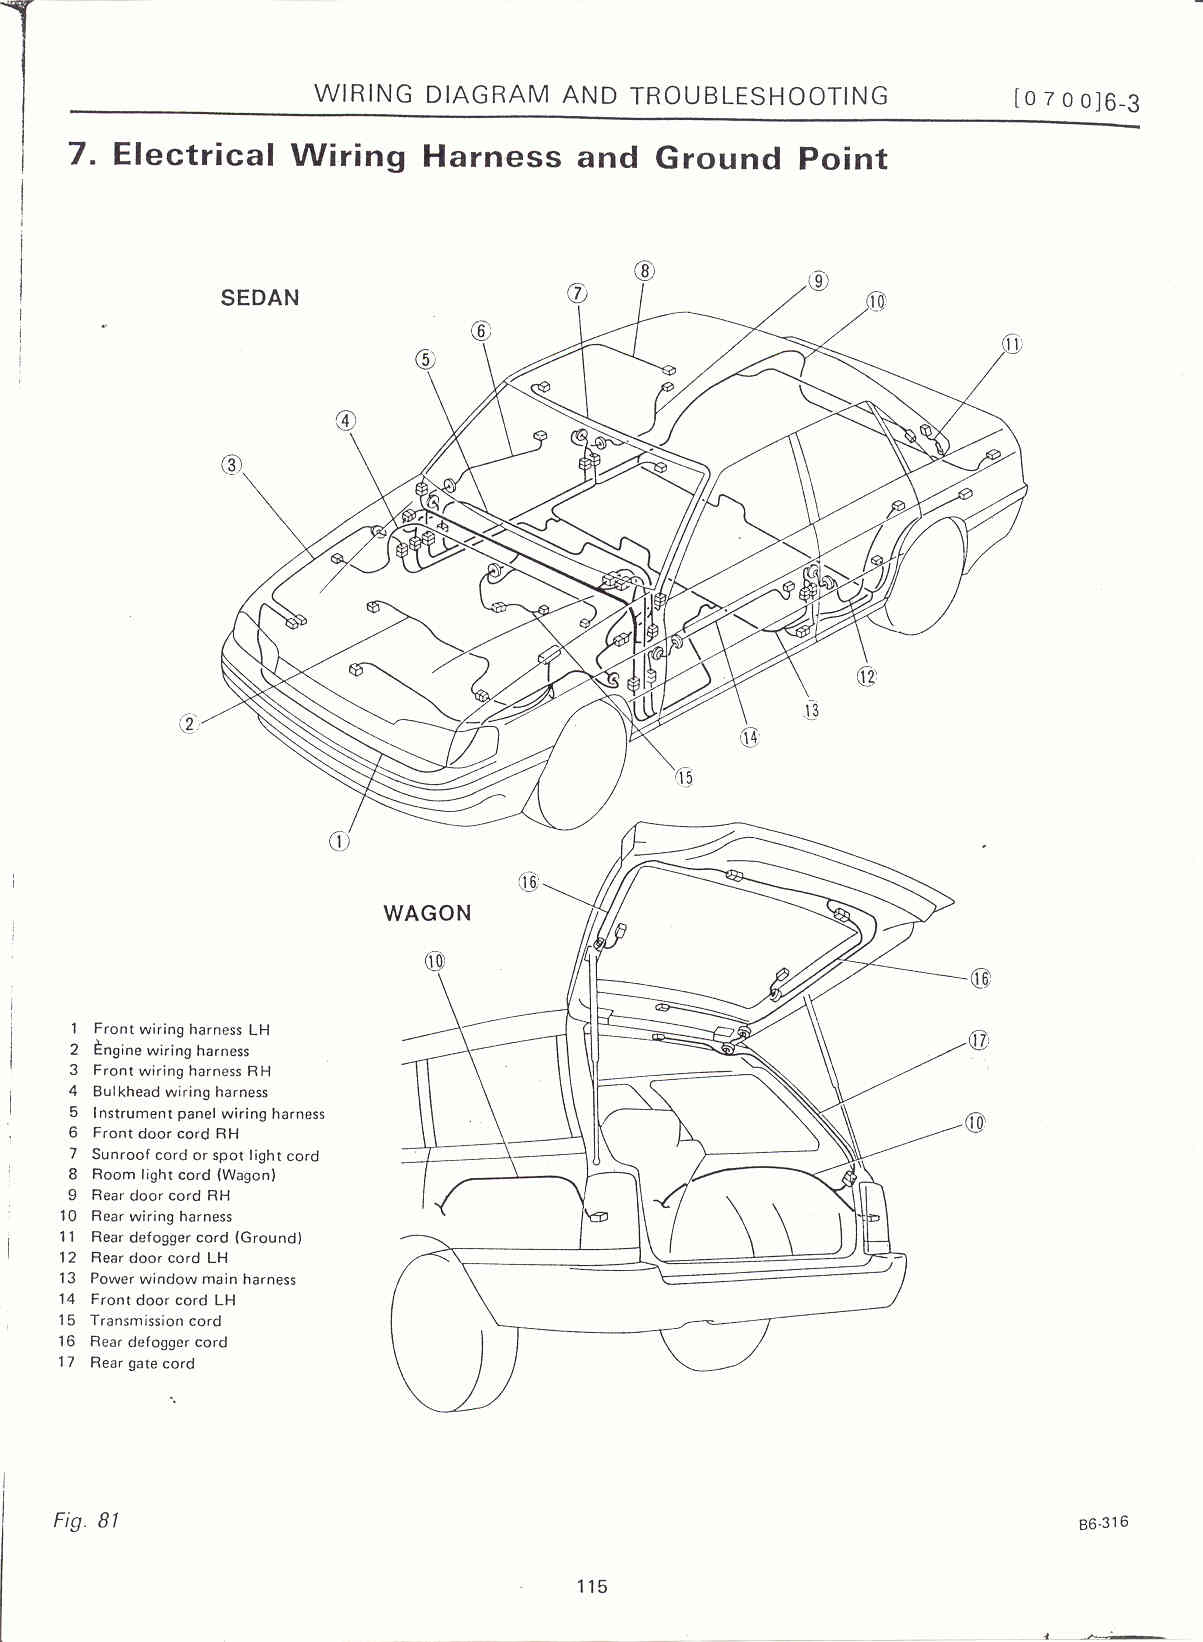 Subaru Outback Electrical Wiring Diagram